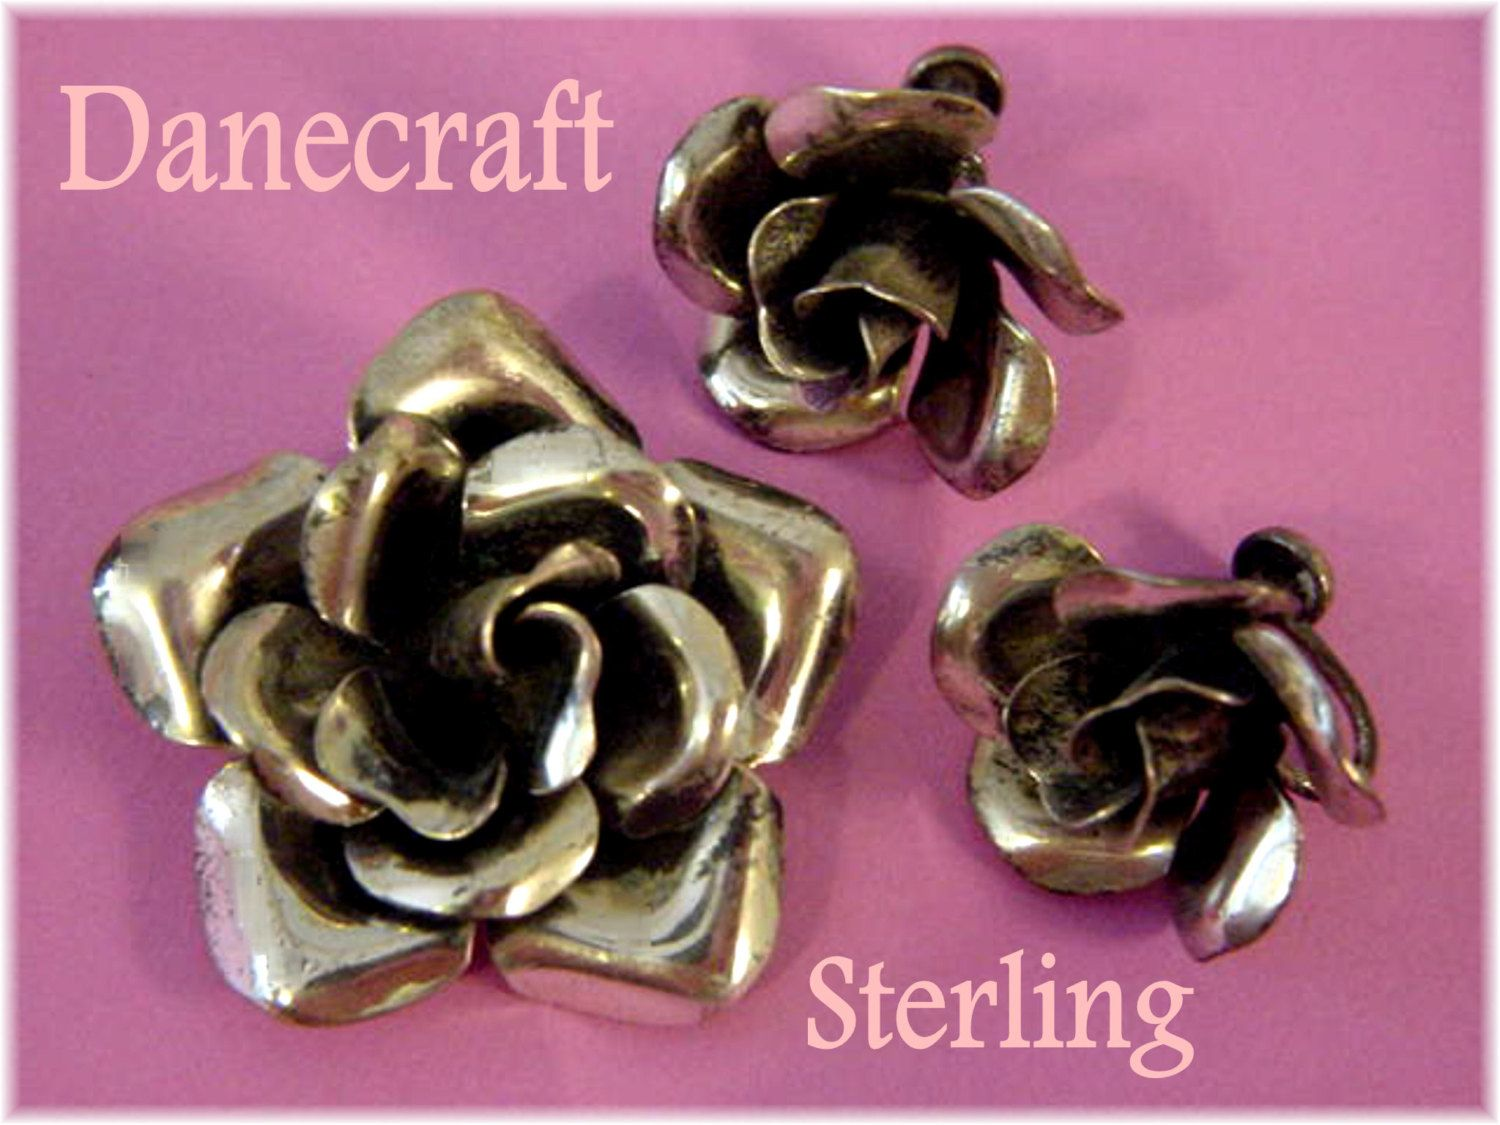 Danecraft Sterling Silver Blooming Rose Brooch Pin & Earrings Set - 24.10 Grams - Victorian Garden Flowers - Estate Antique - FREE SHIPPING